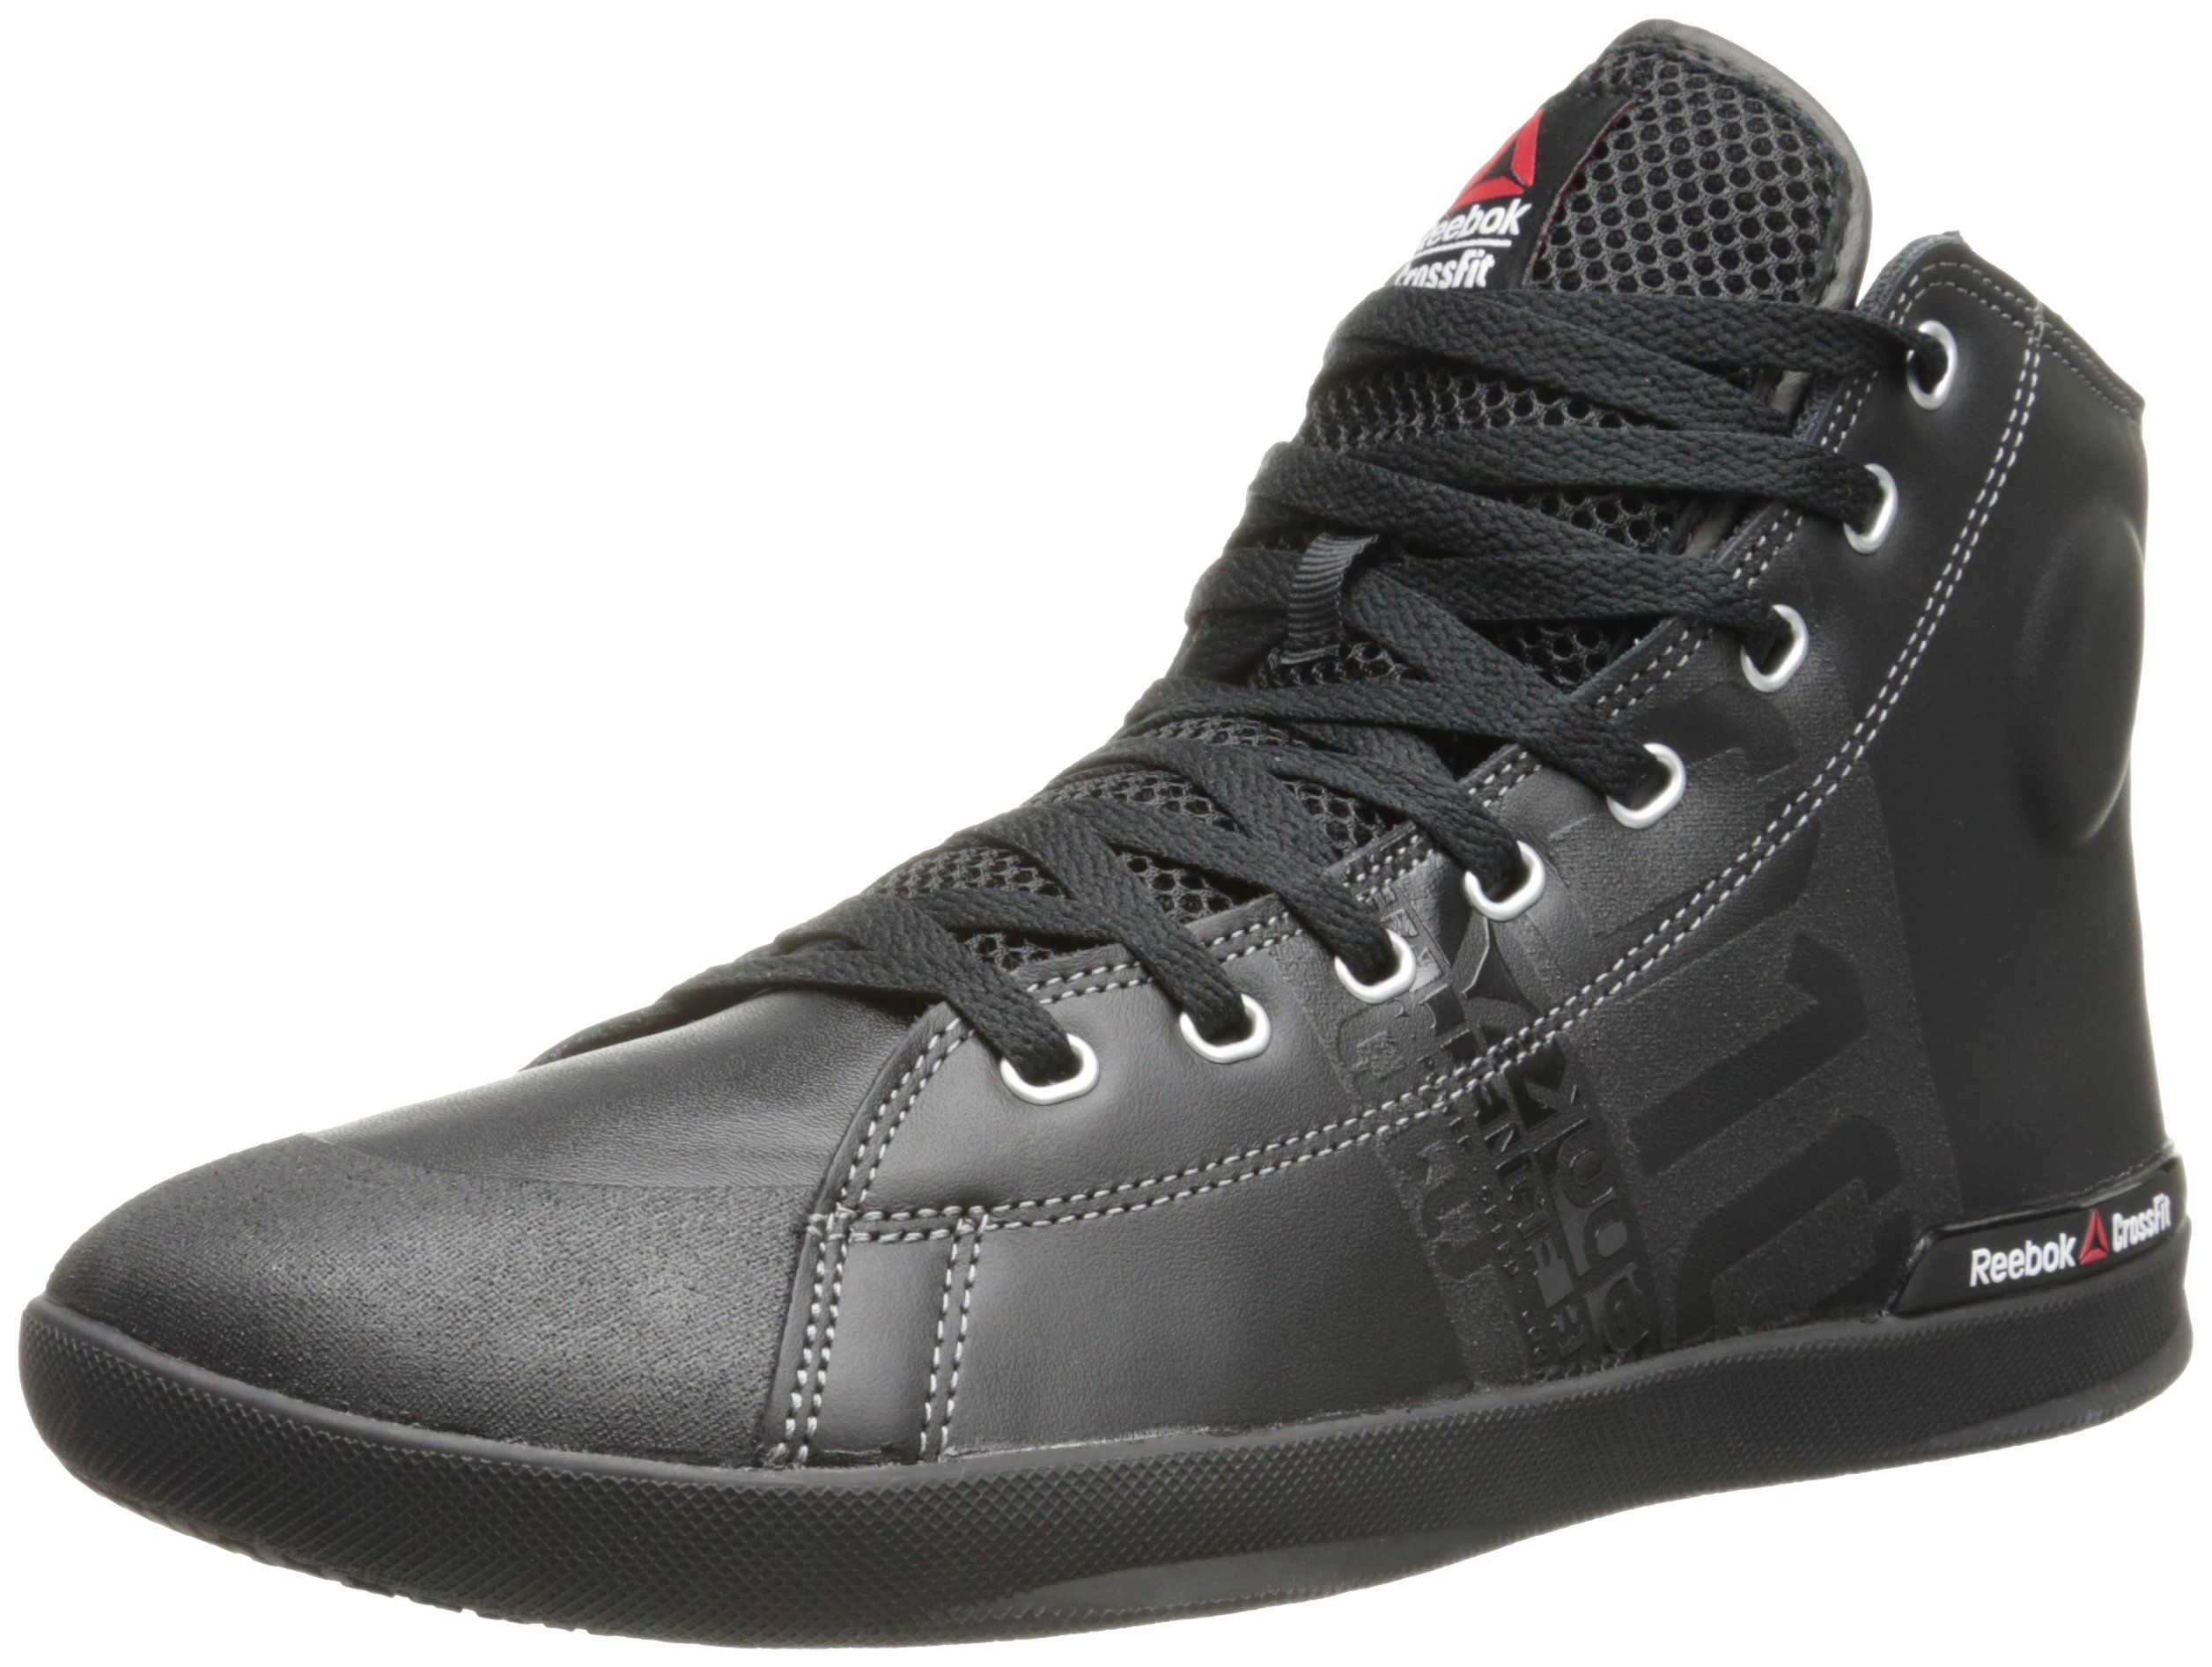 reebok crossfit high top